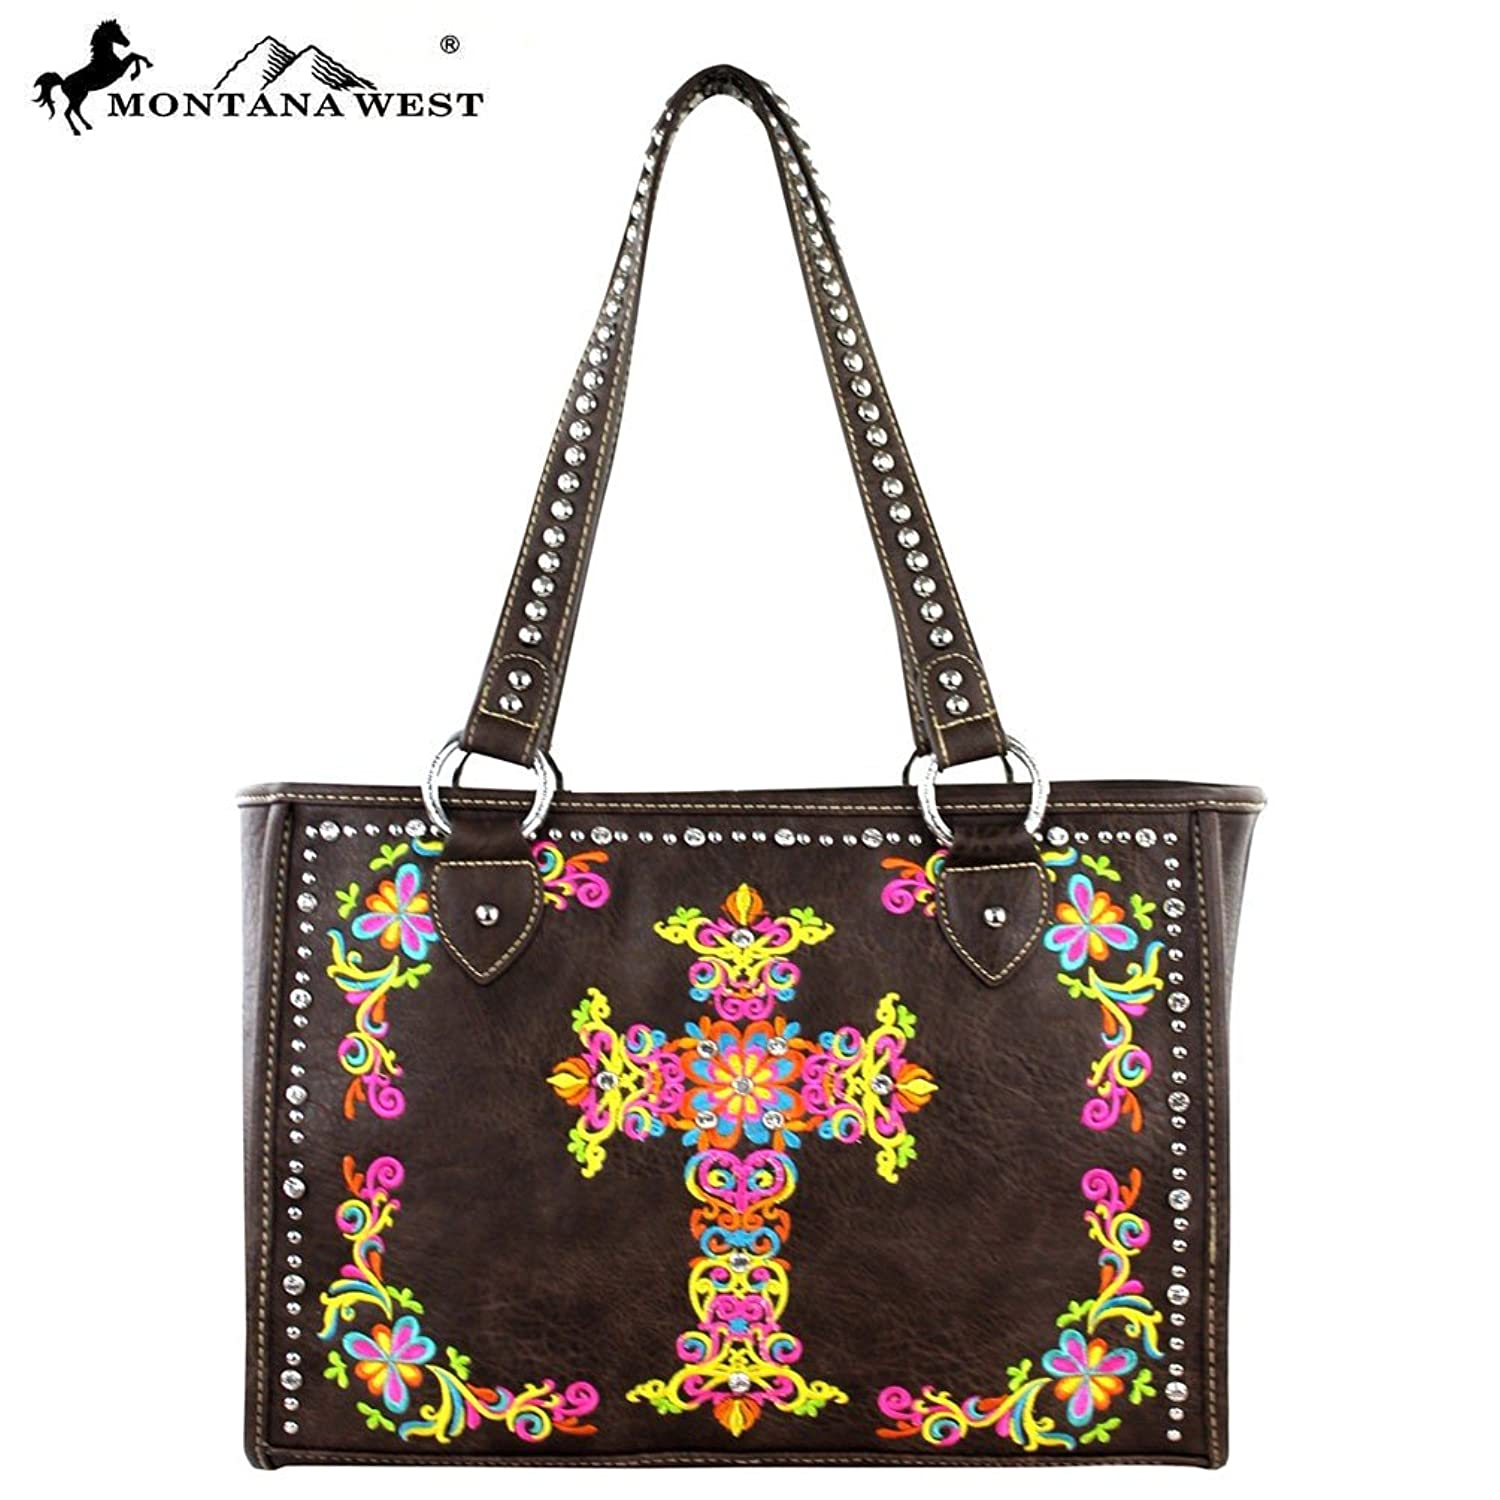 Montana West Spiritual Collection Colorful floral embroidery Cross Tote in 4 Colors